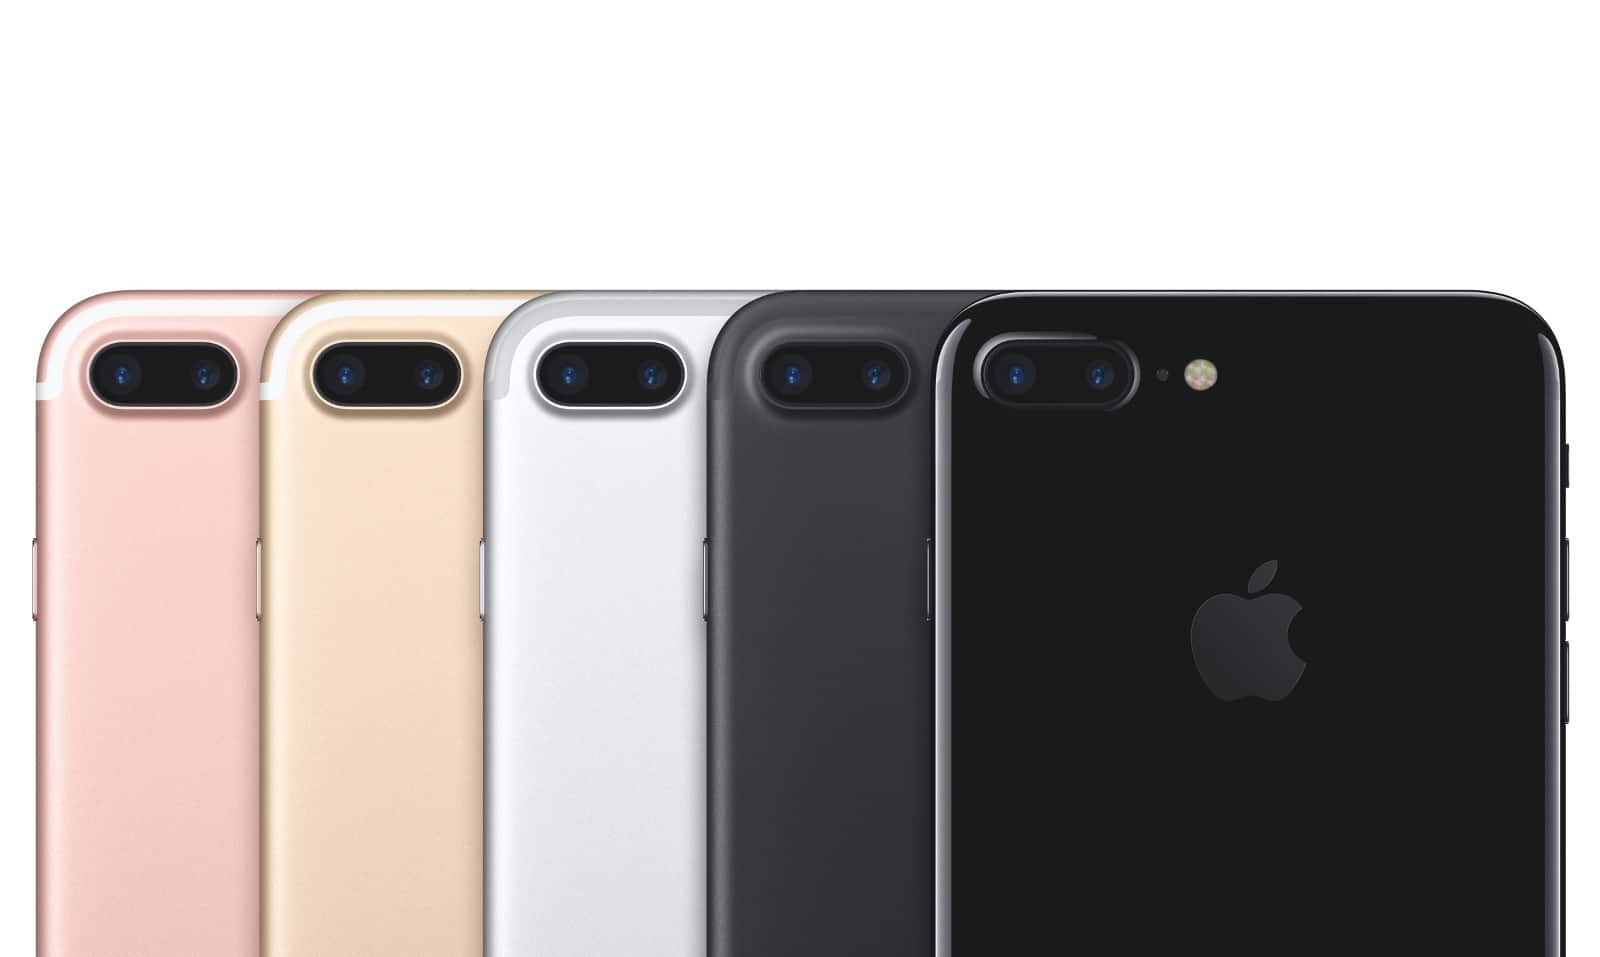 Le 5 migliori cover per iPhone 7 e iPhone 7 Plus